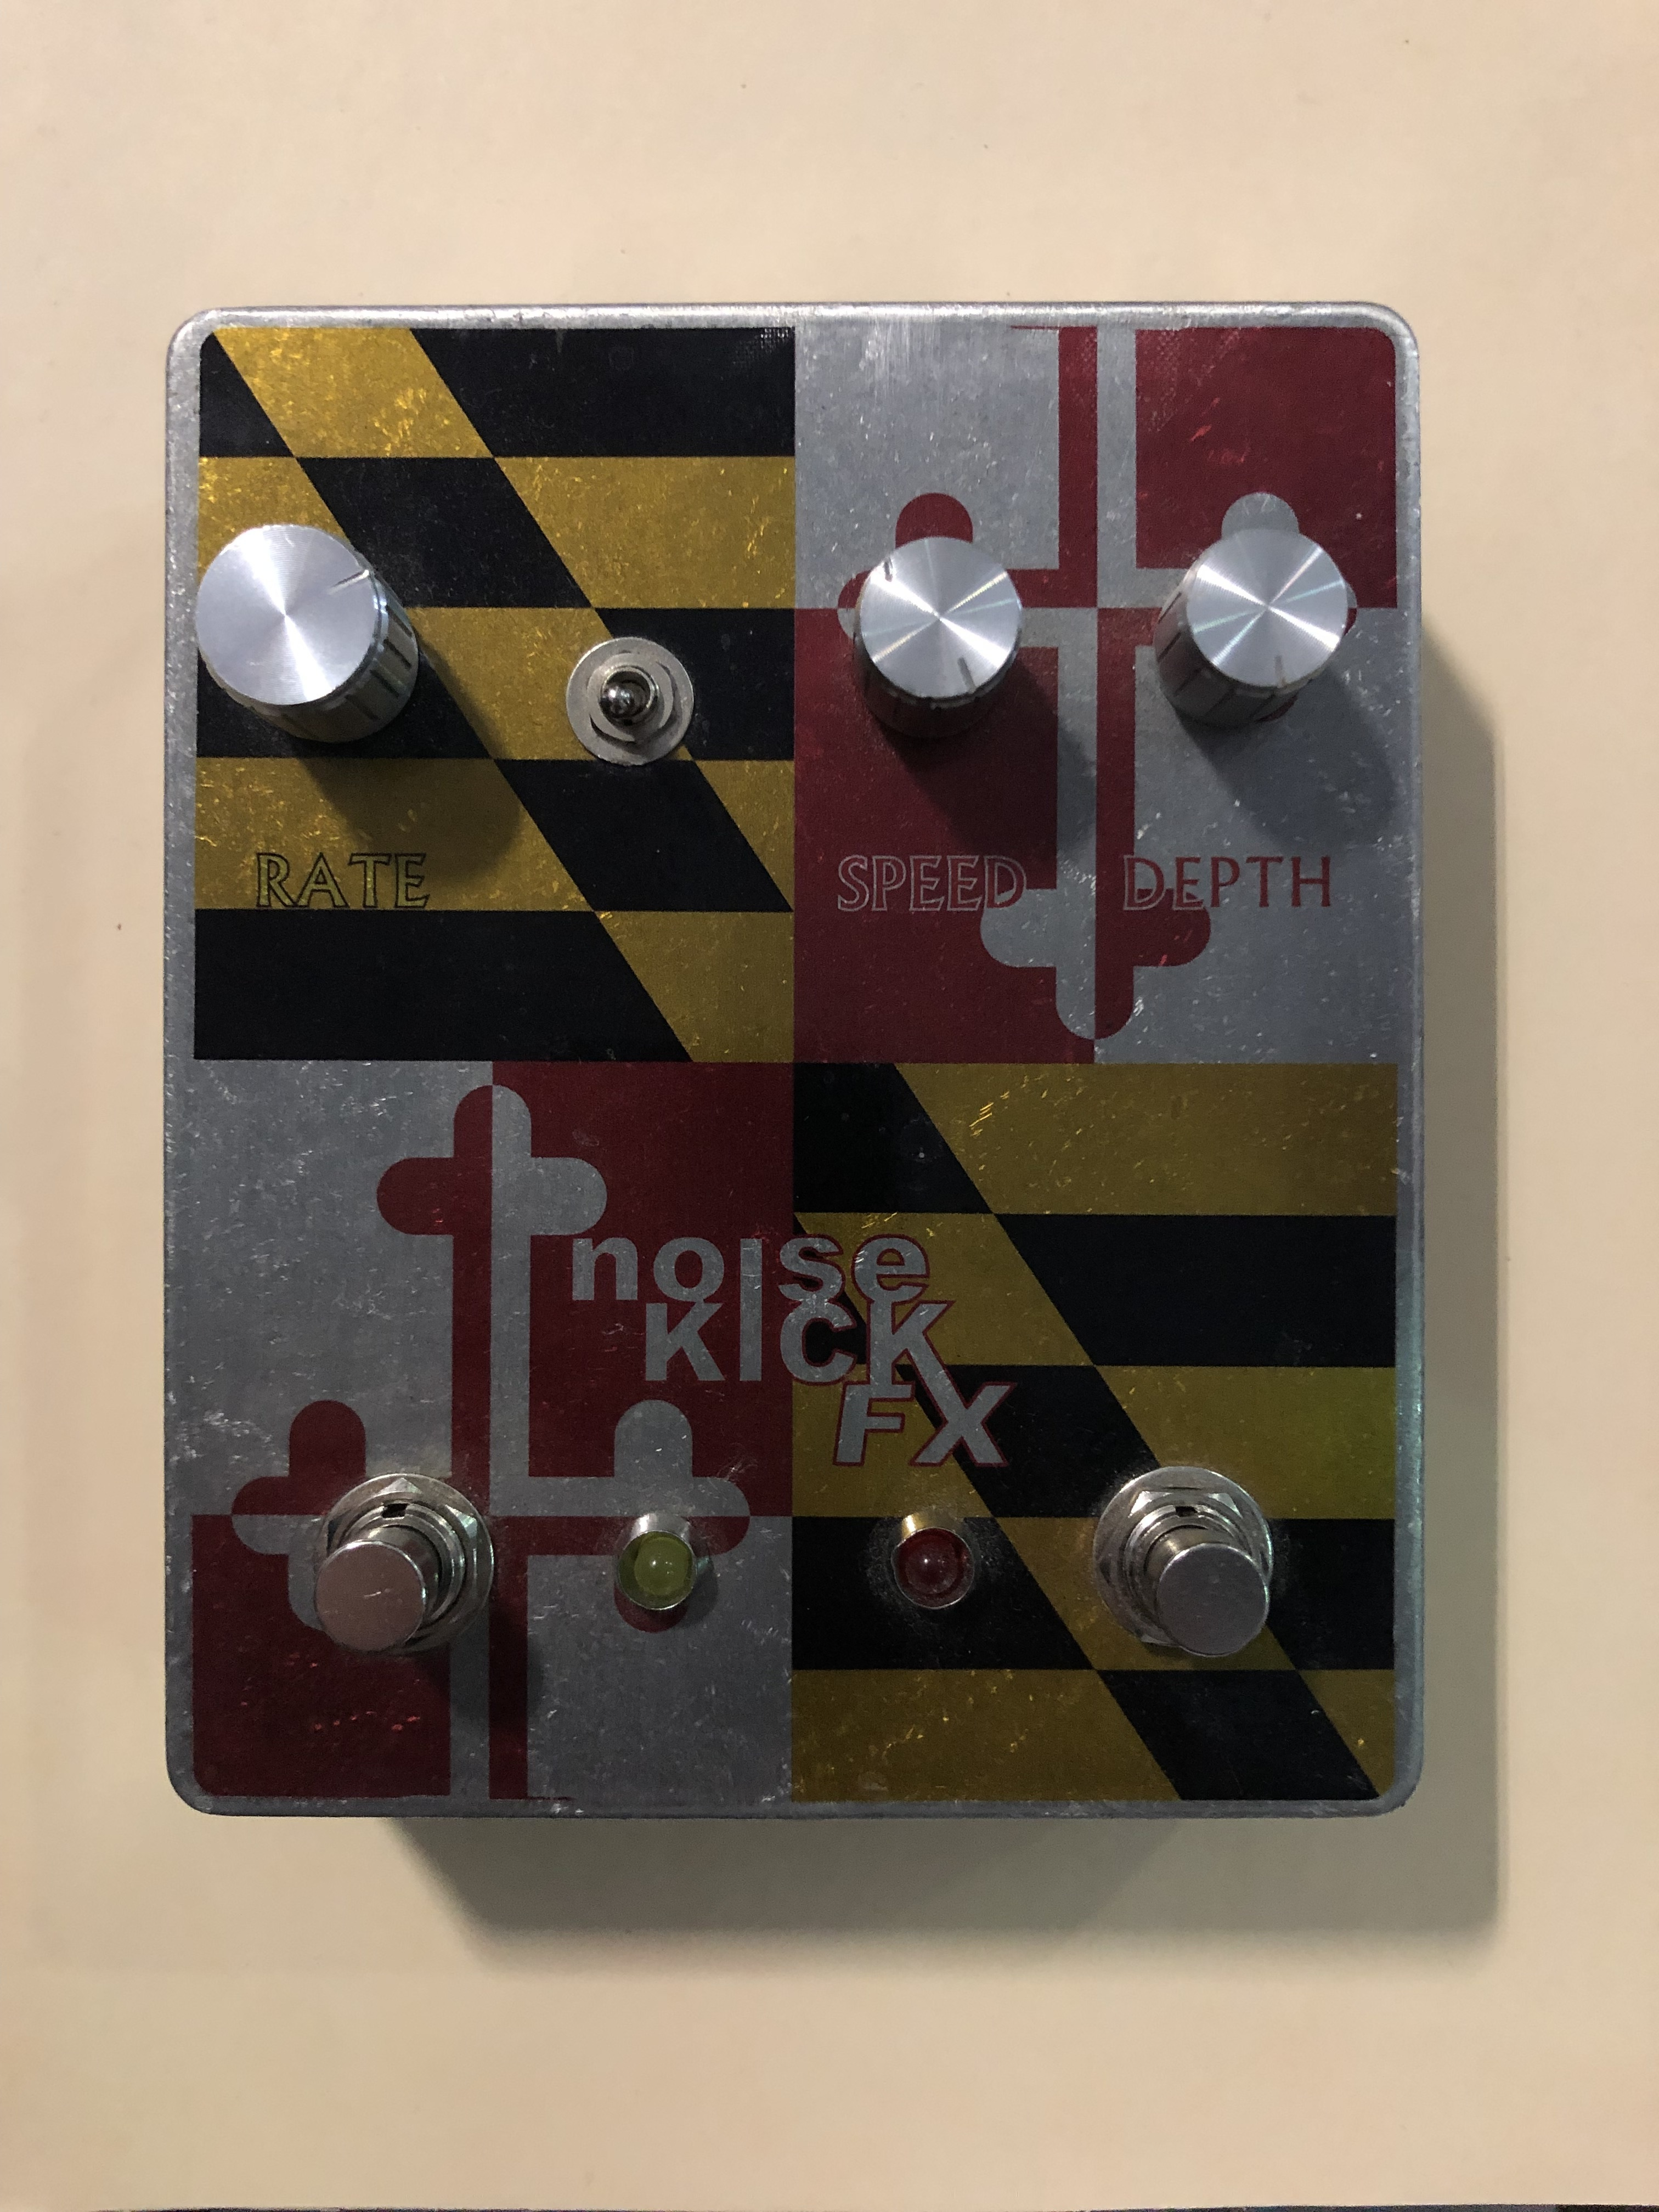 NOISE KICKFX - MD MODULATOR - CHORUS / PHASER EFFECTS PEDAL